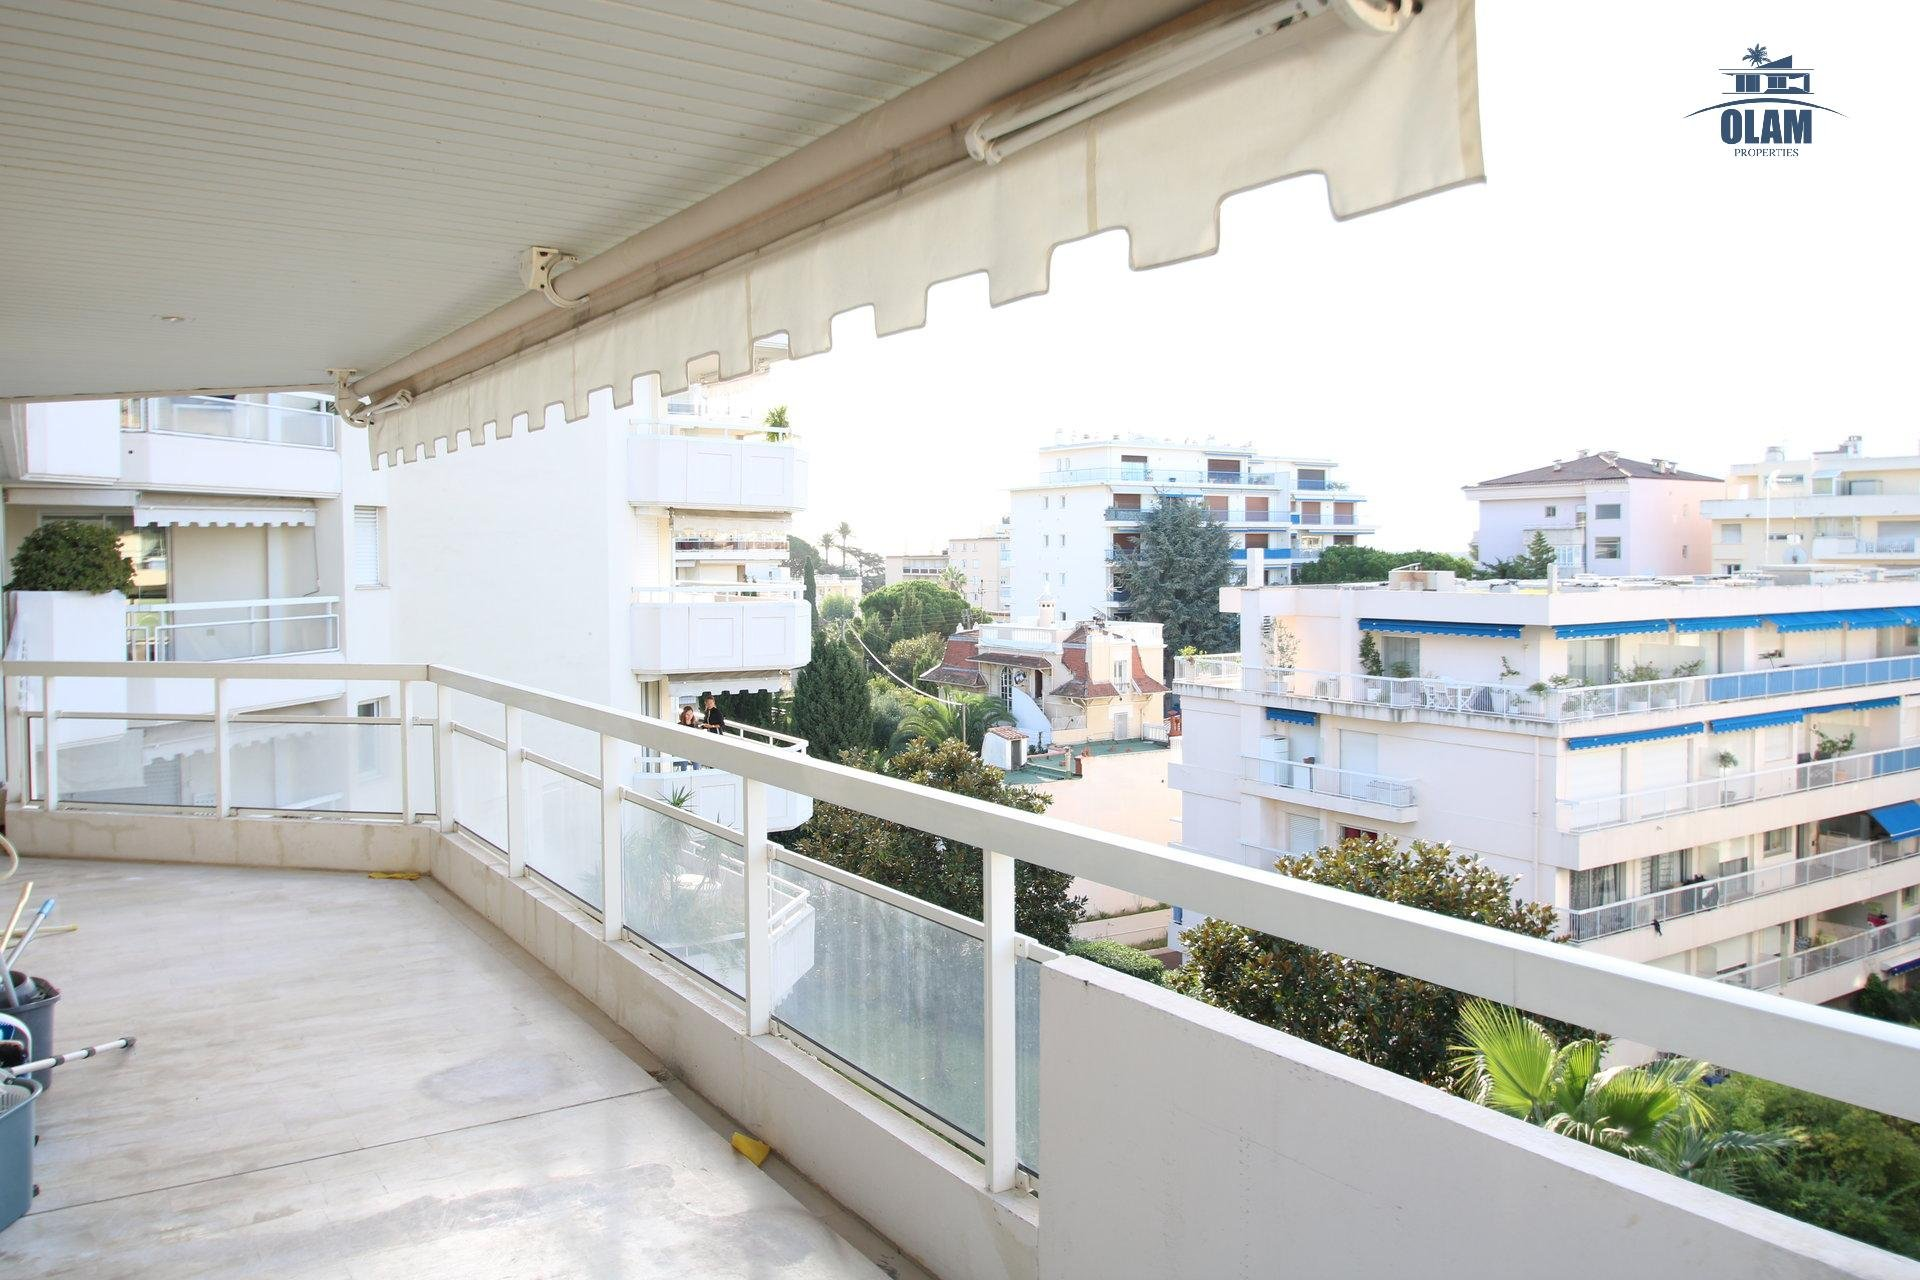 3-bedroom apartment in a premium residence, steps to beaches